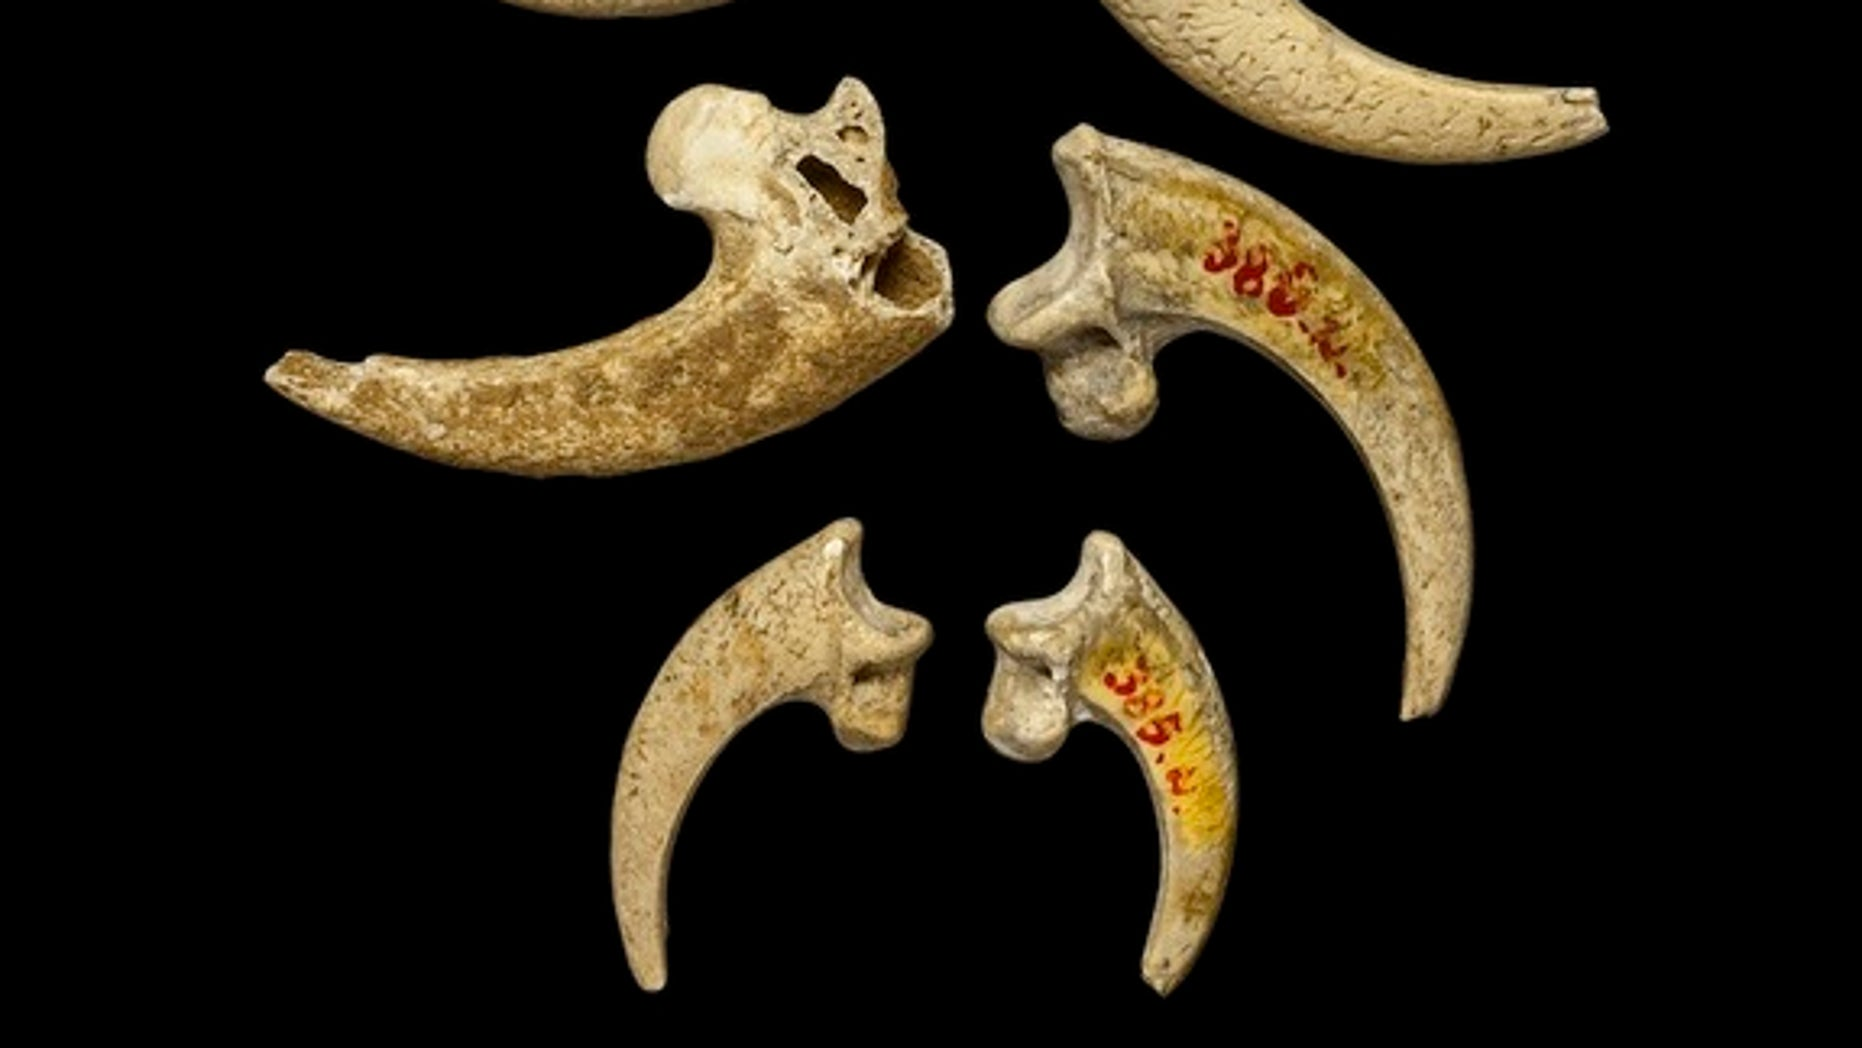 The eight eagle talons from Krapina arranged with an eagle phalanx that was also found at the site.